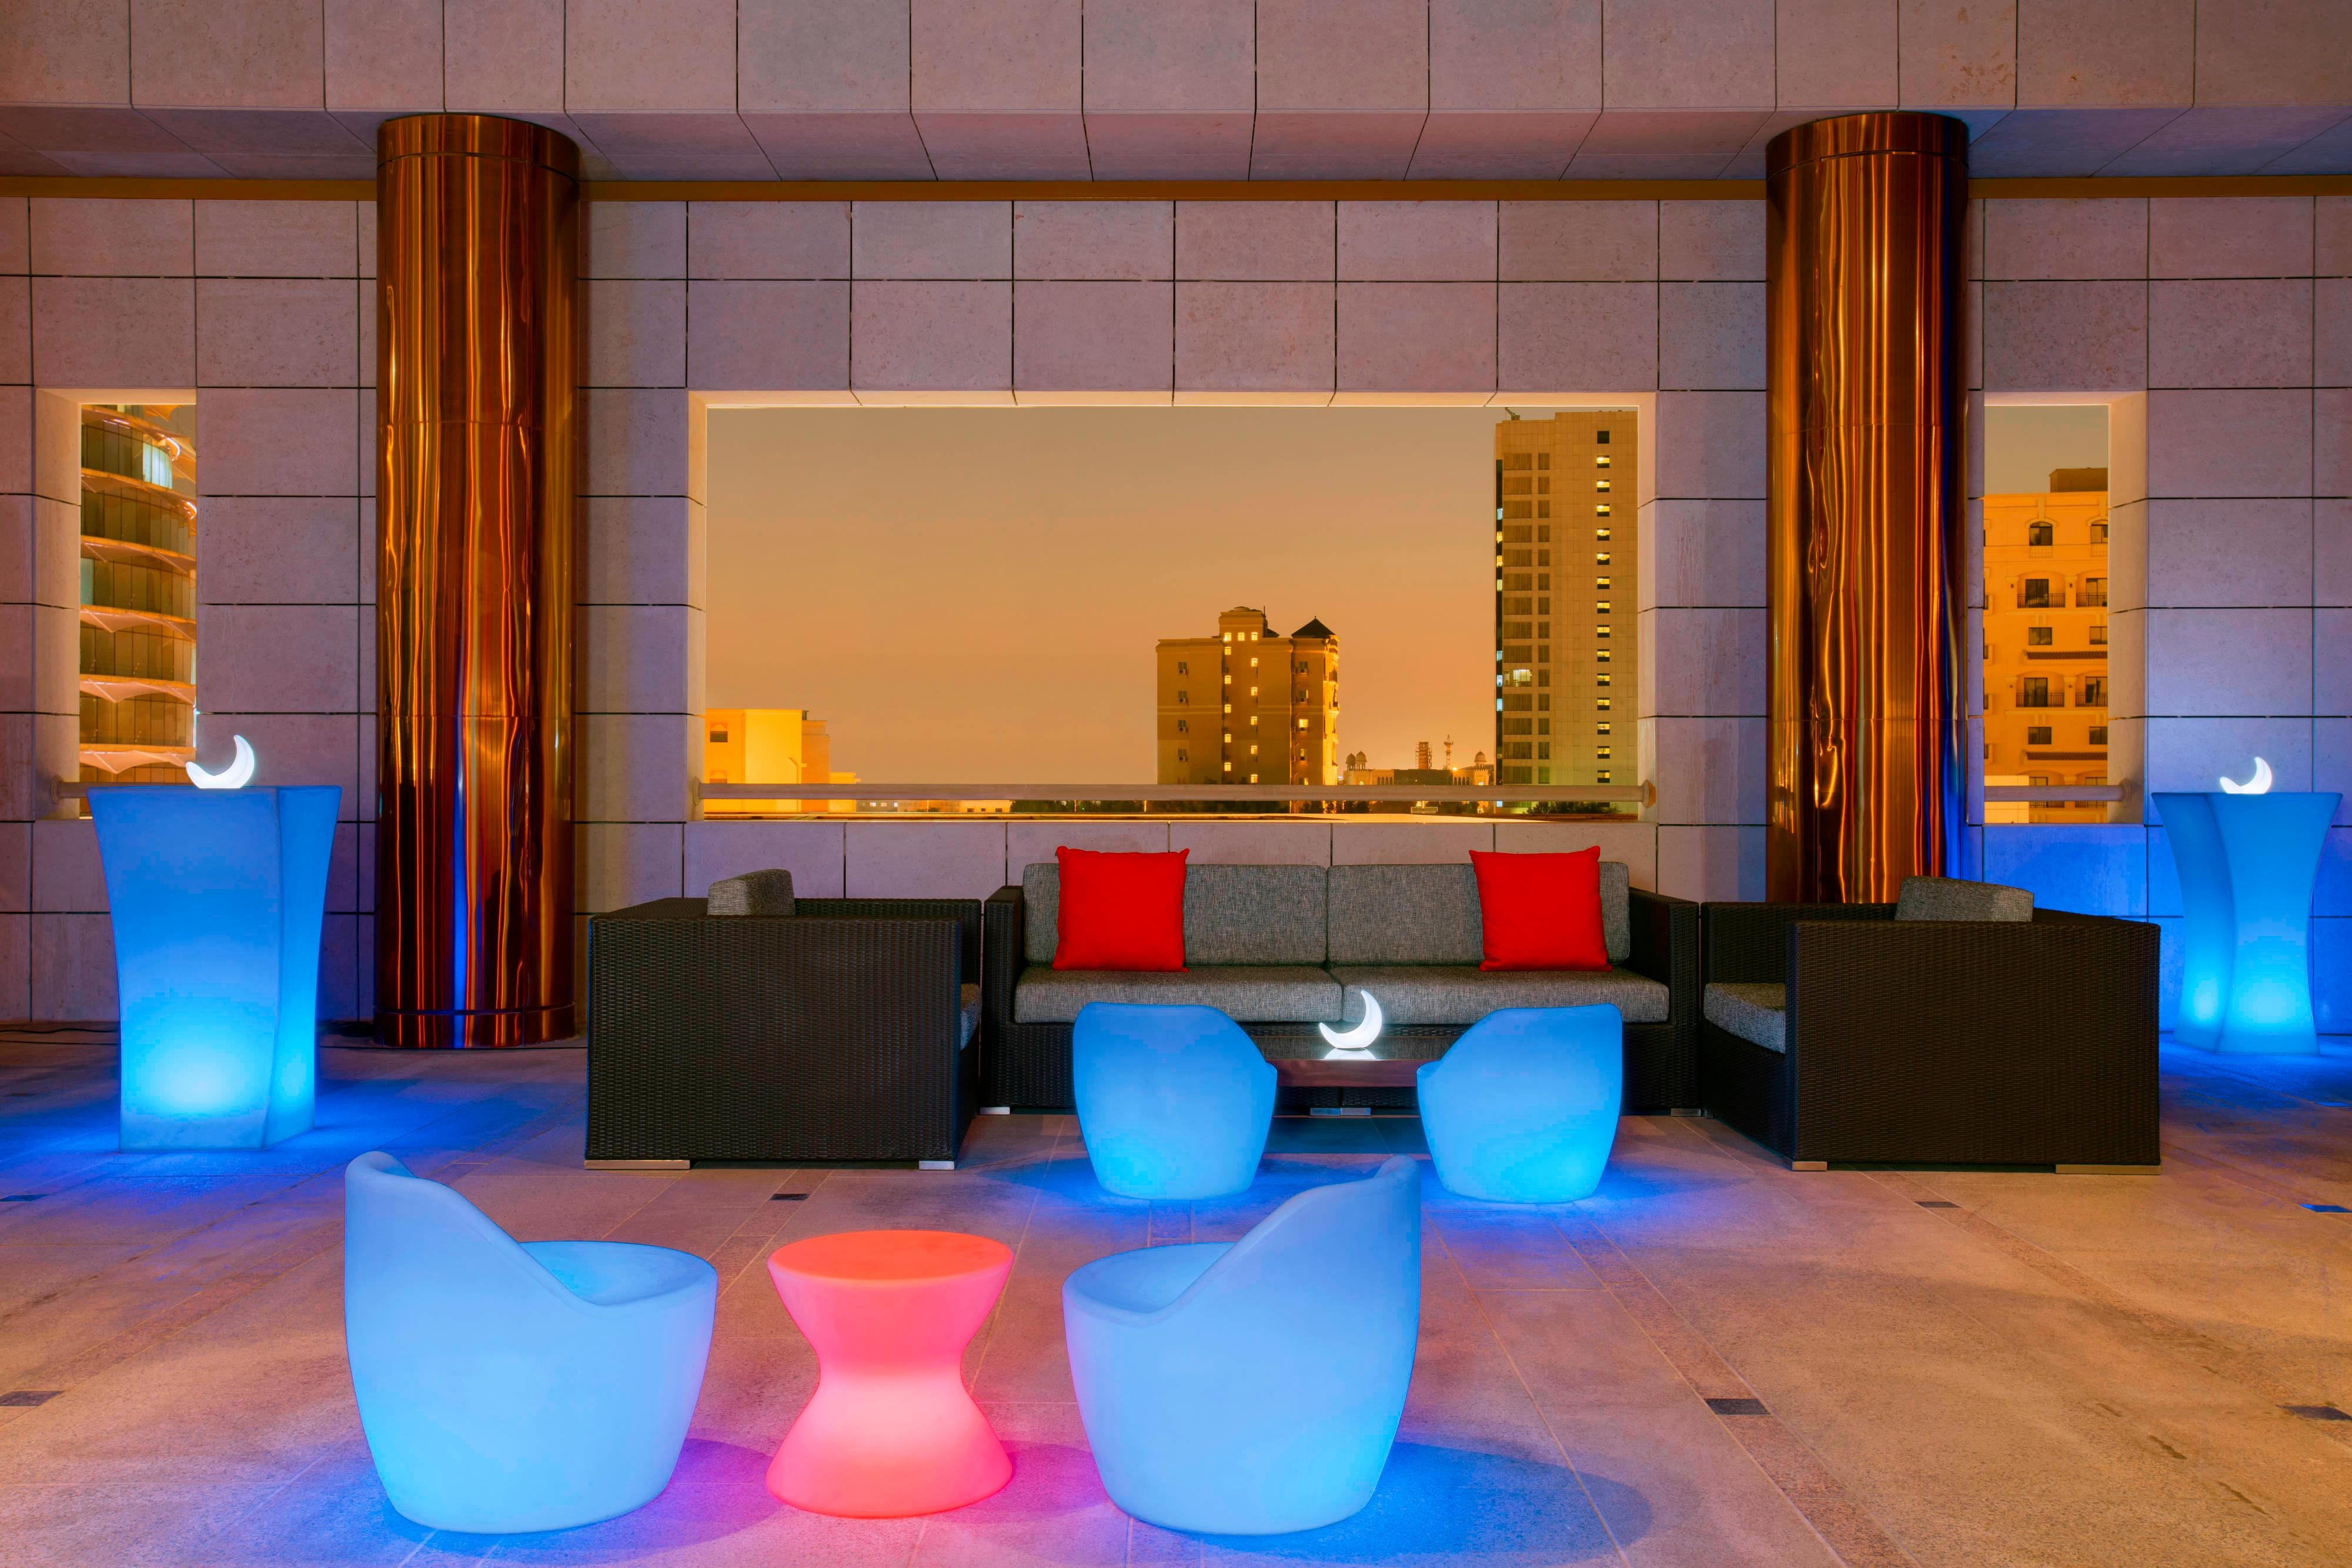 The Mix Bar Terrace is a lively, soulful rooftop area – the coolest place to be on Doha's social scene. With a fantastic views over downtown Doha, guests can enjoy live performances every evening while enjoying their favorite drinks